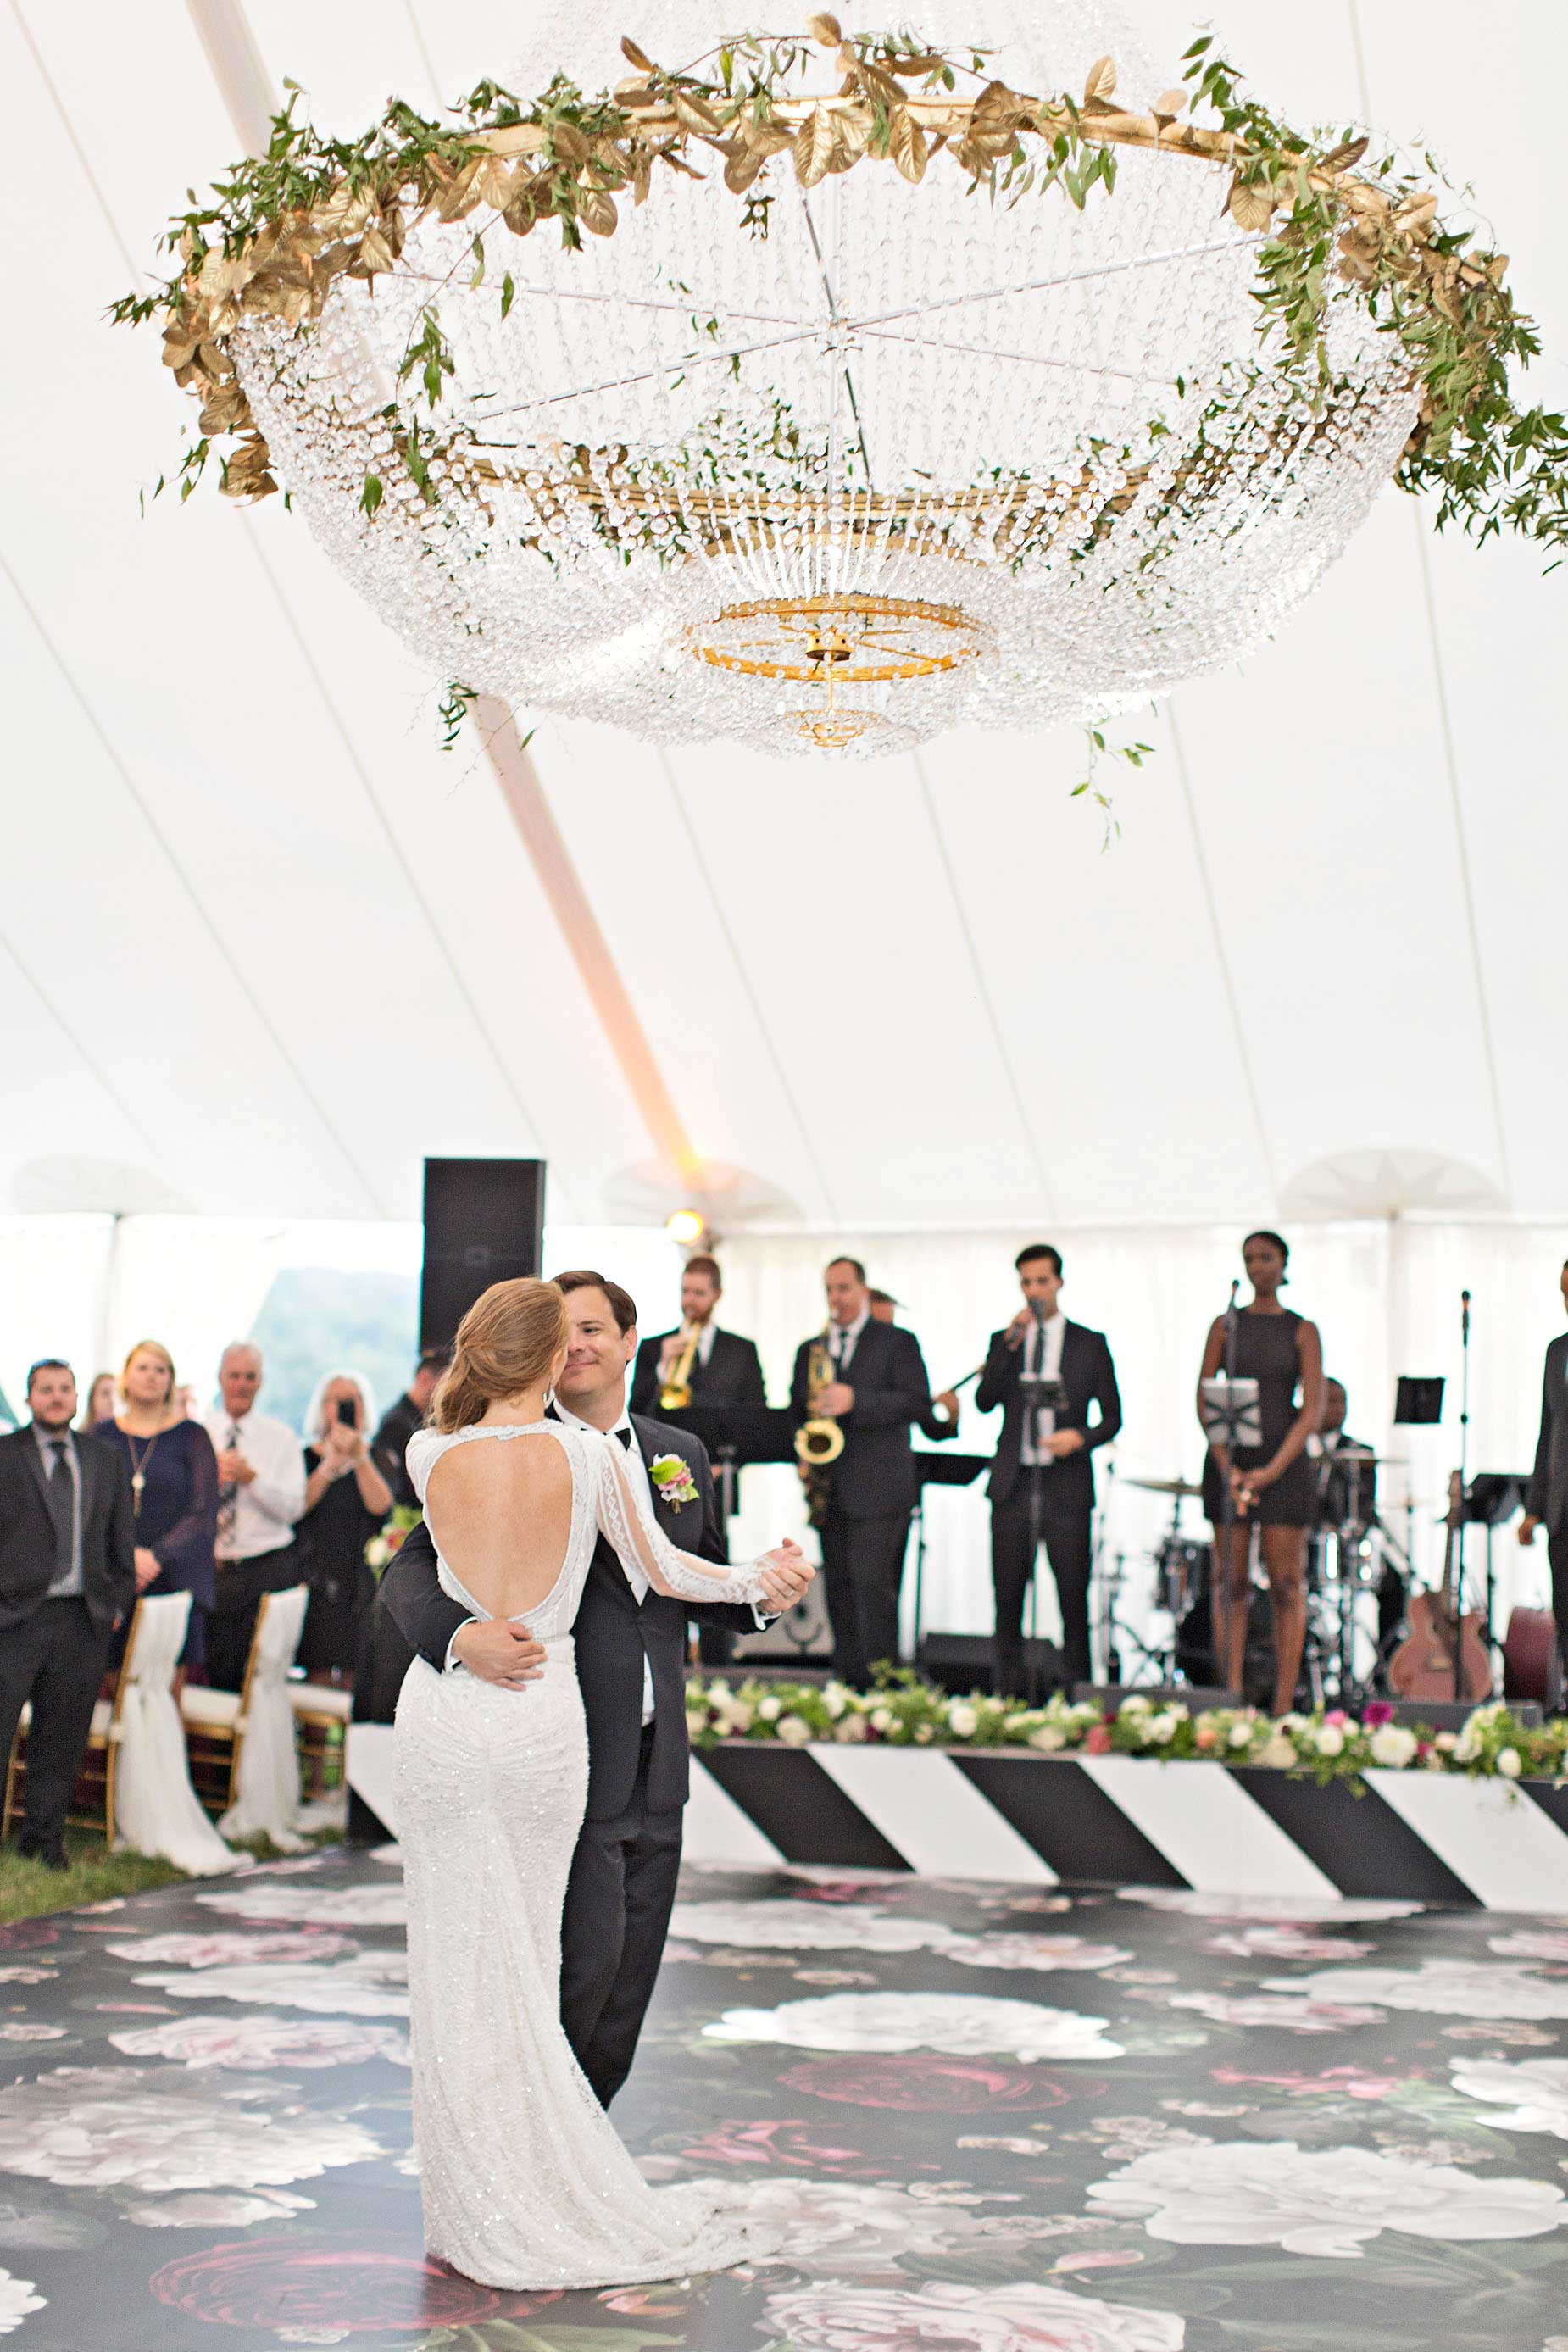 6 Tips for Choosing the Perfect First Dance Song